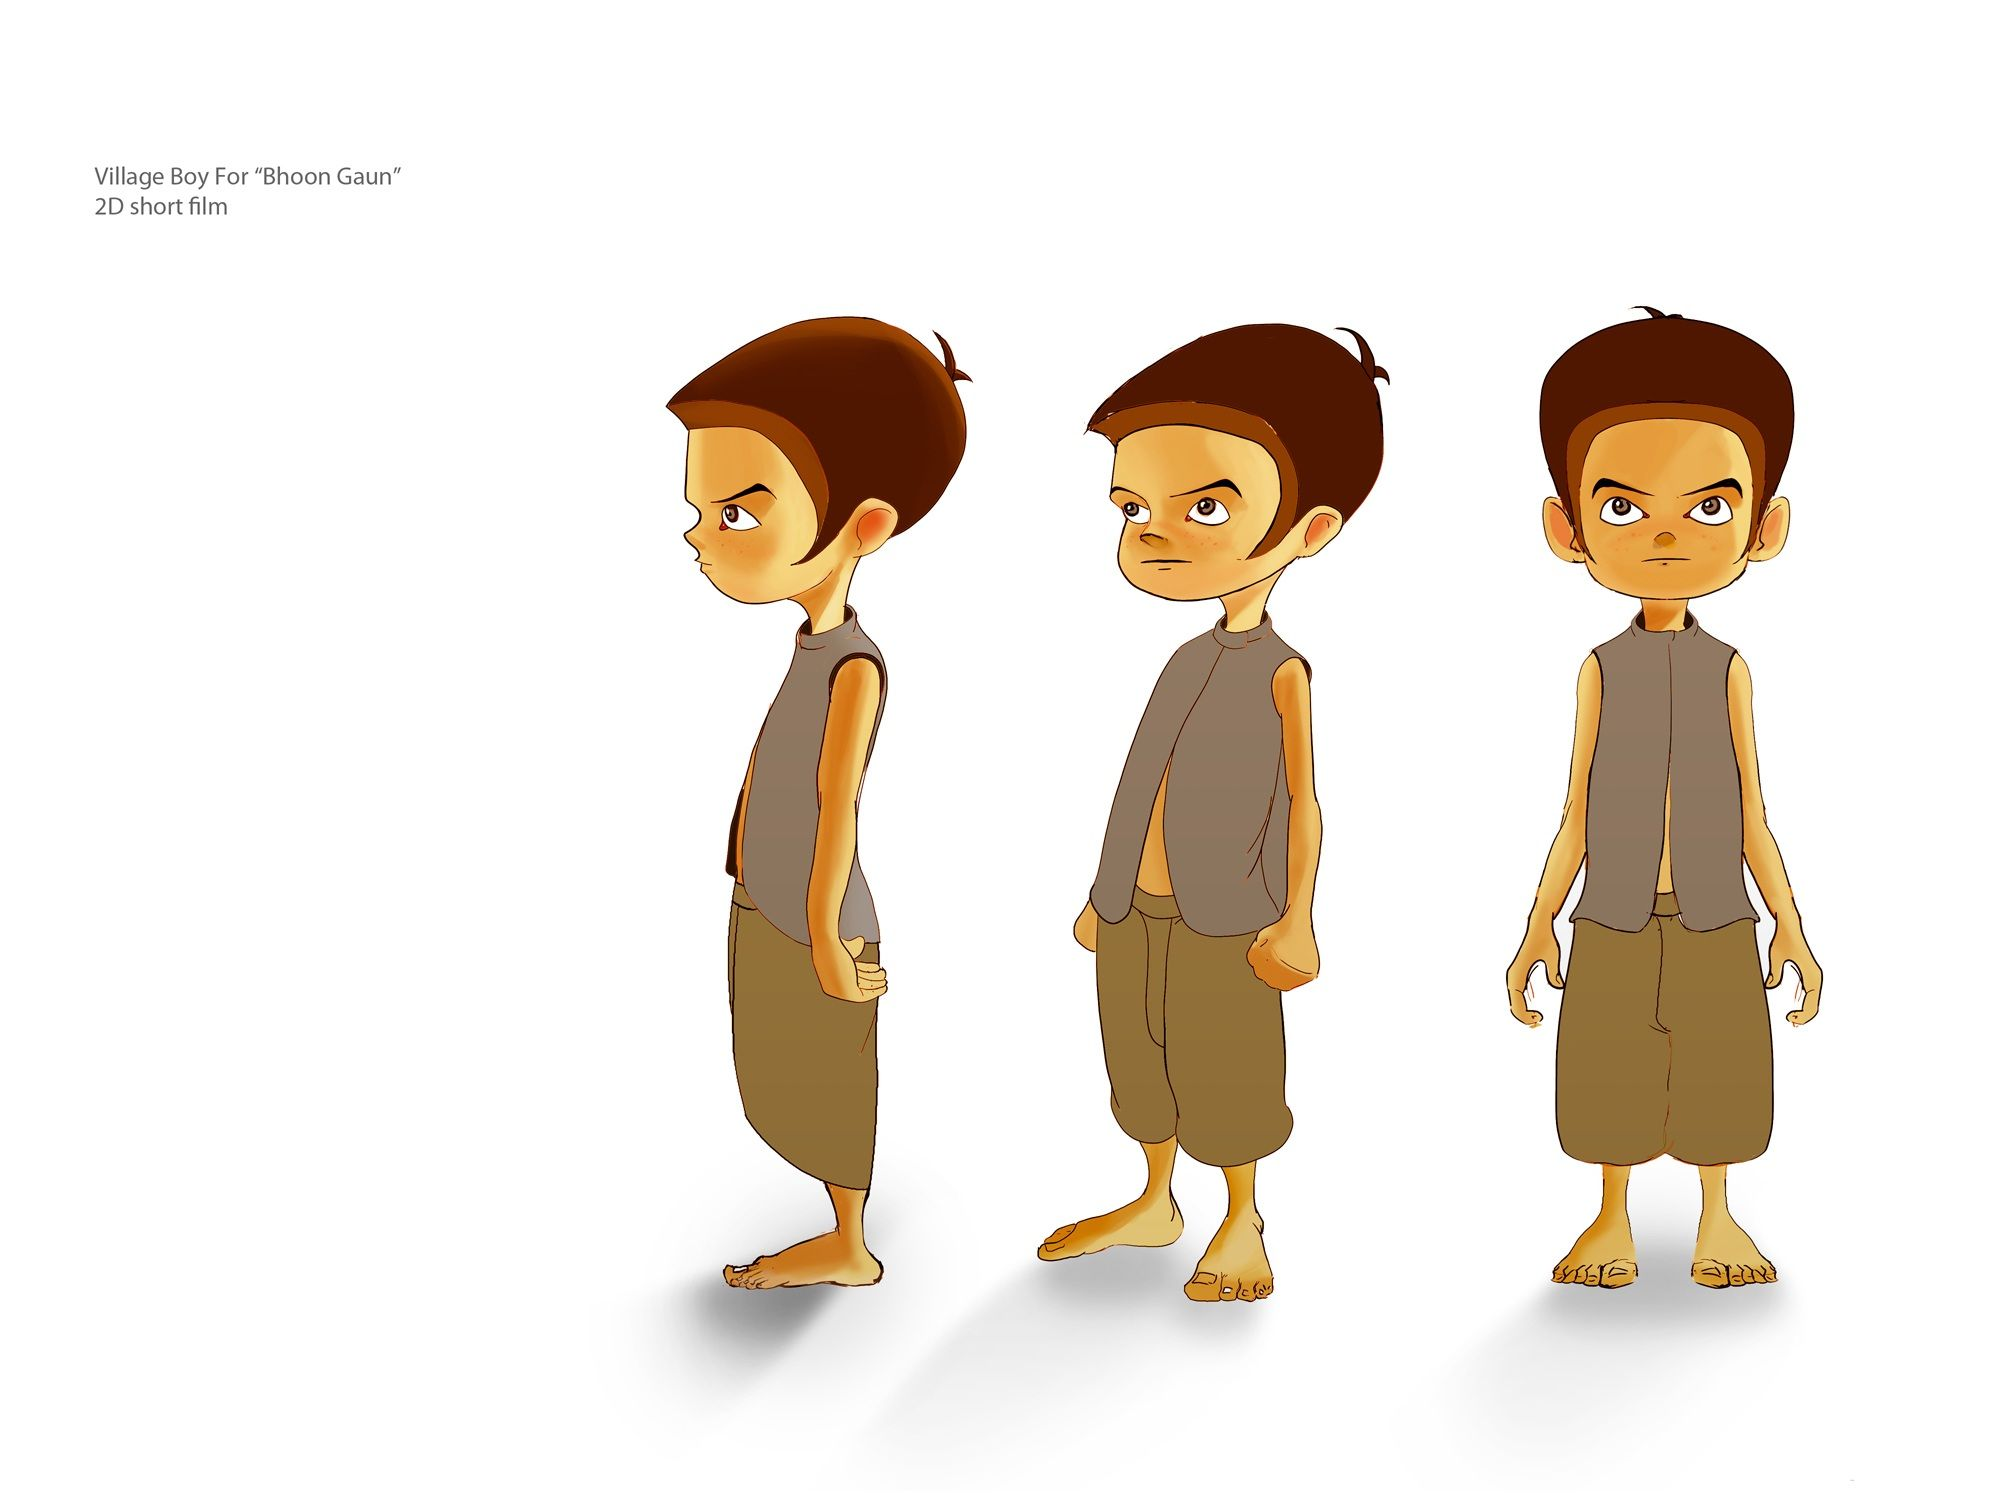 Character Design Documentary : Village kid character for d short film bhoot gaun